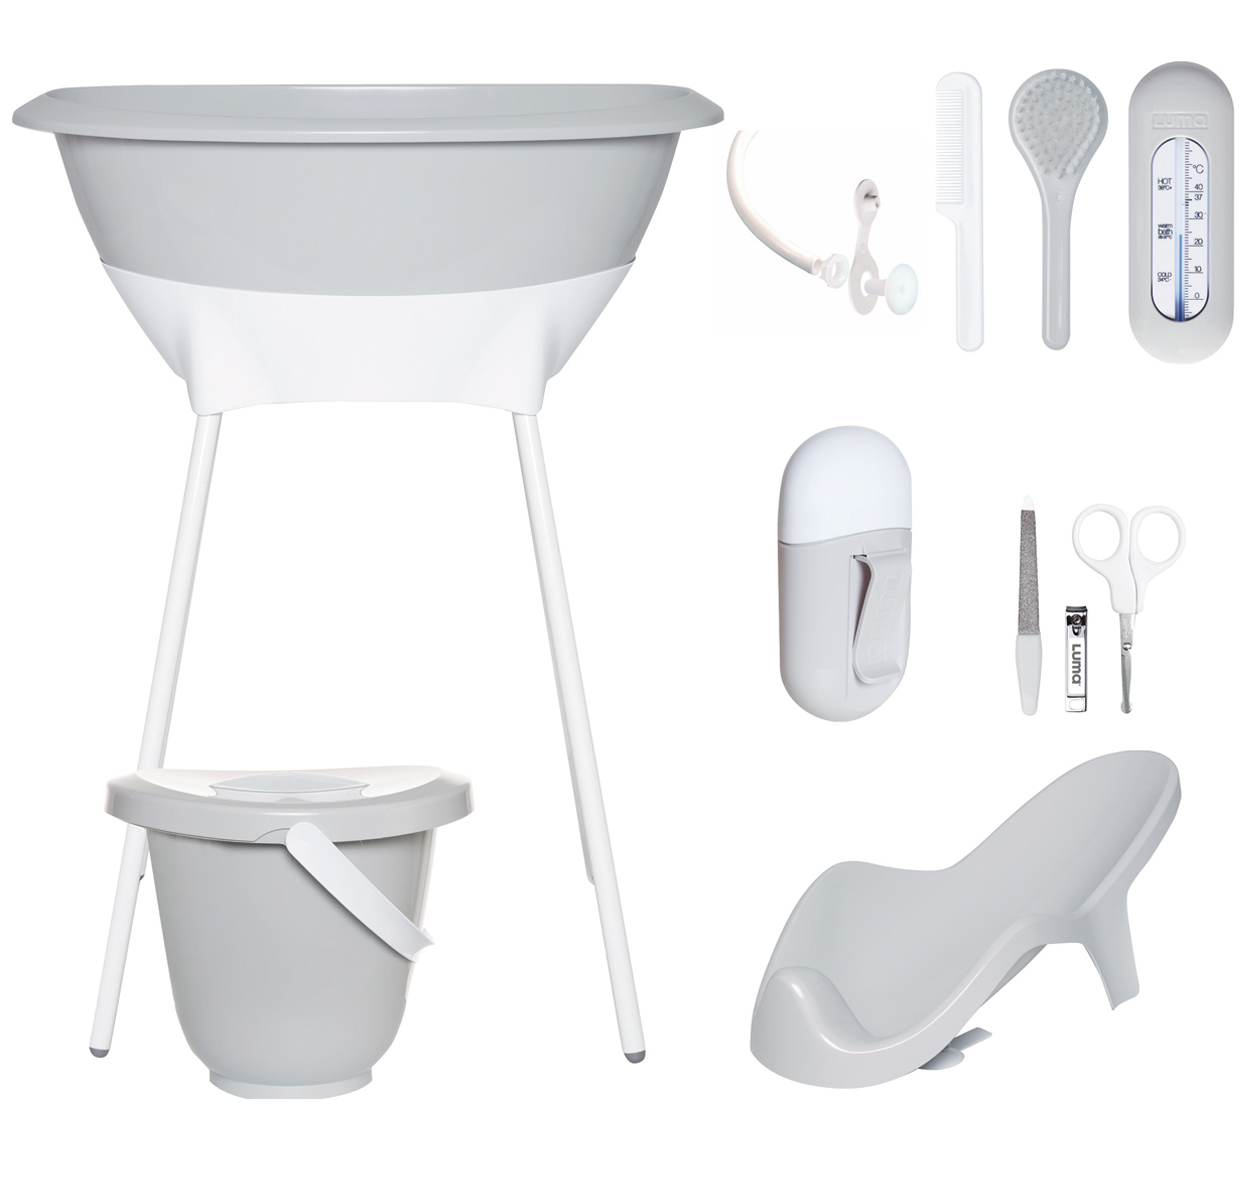 Order The Luma Bath And Care Set 8 Pieces Online Baby Plus